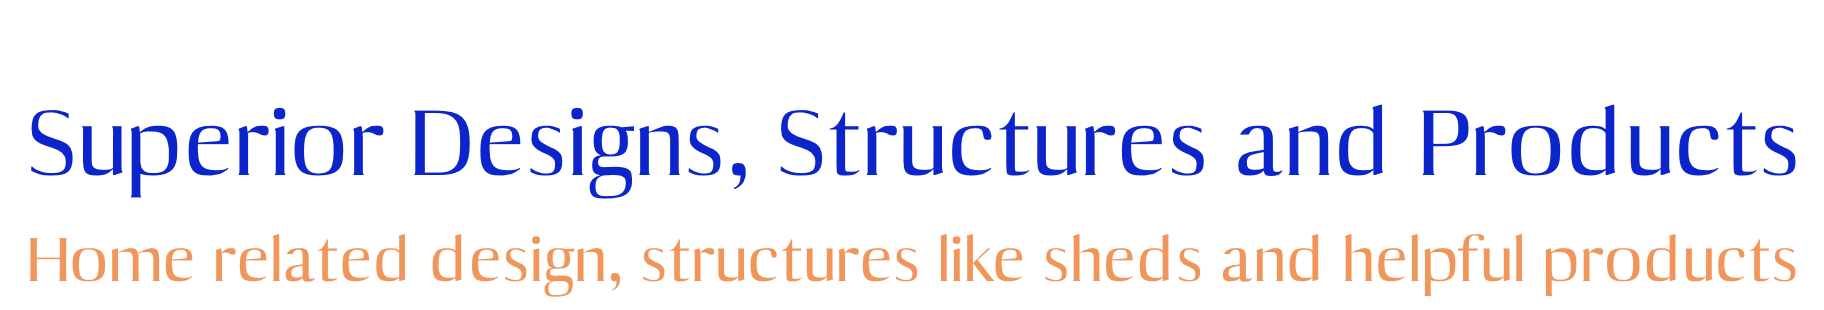 Superior Designs, Structures and Products